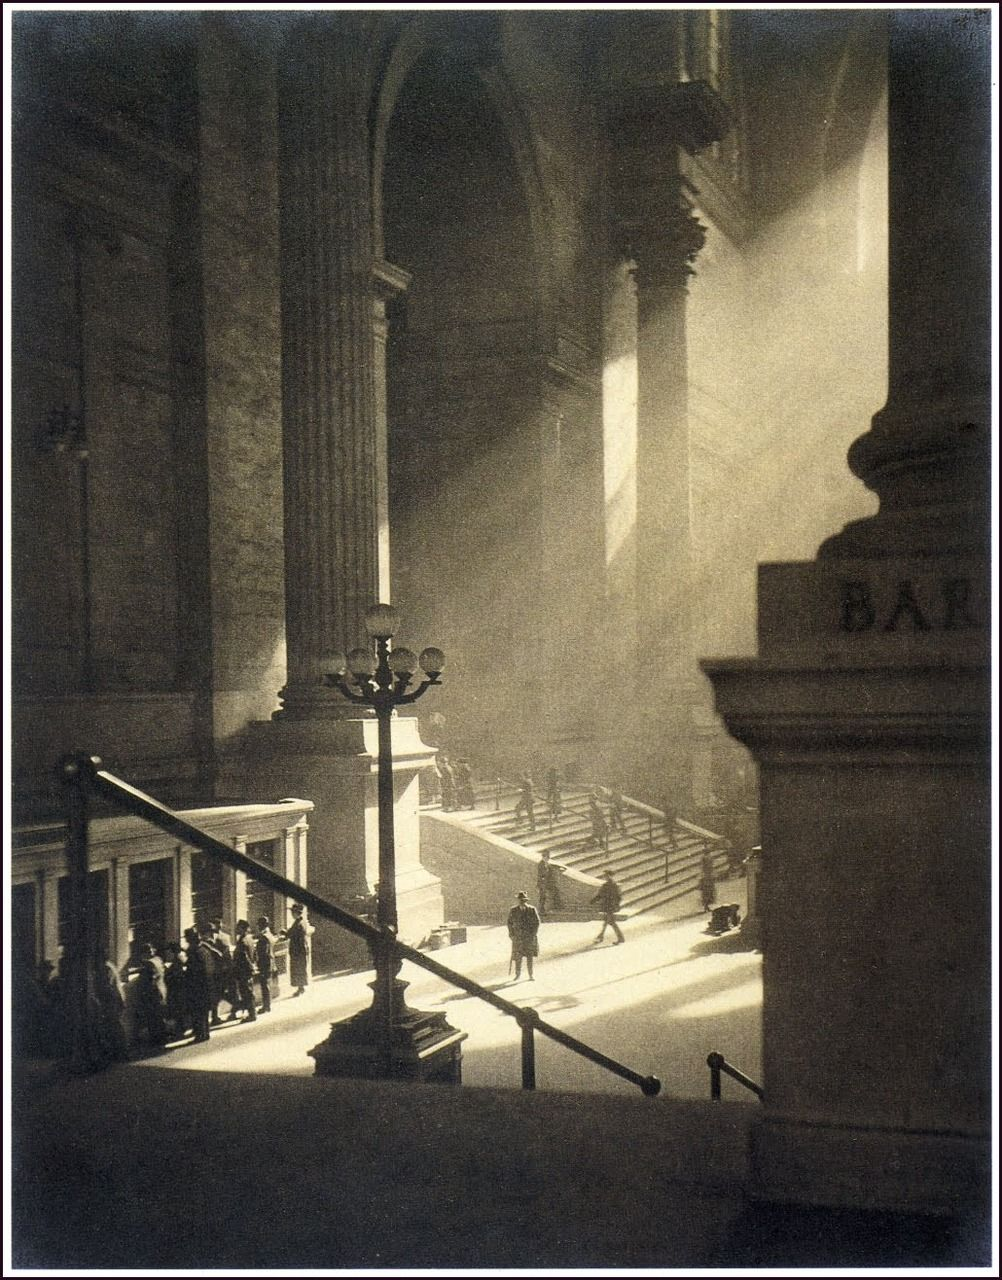 d343c6696b1c American Pictorial Photography1912 ~ 1955 Photographs by Karl Struss ...